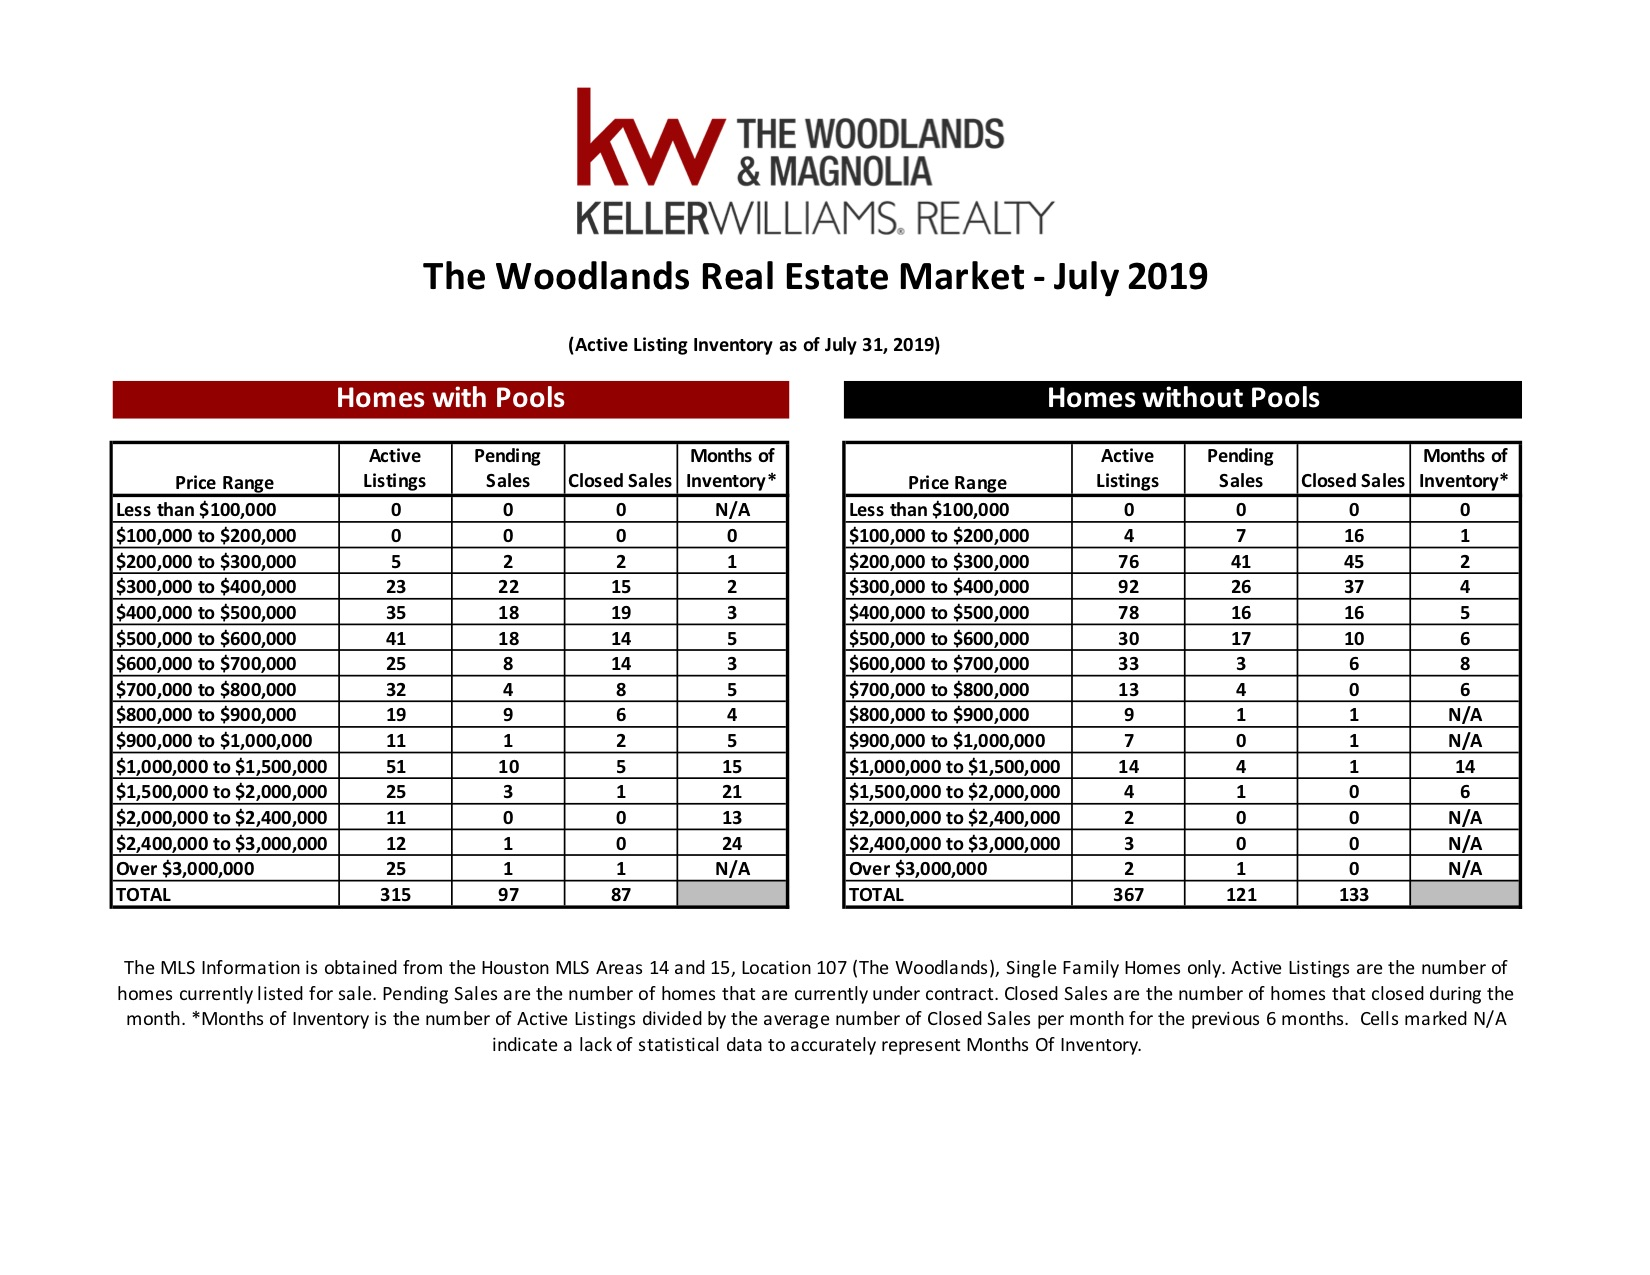 , July 2019 MarketWatch Report – The Woodlands, KW Woodlands